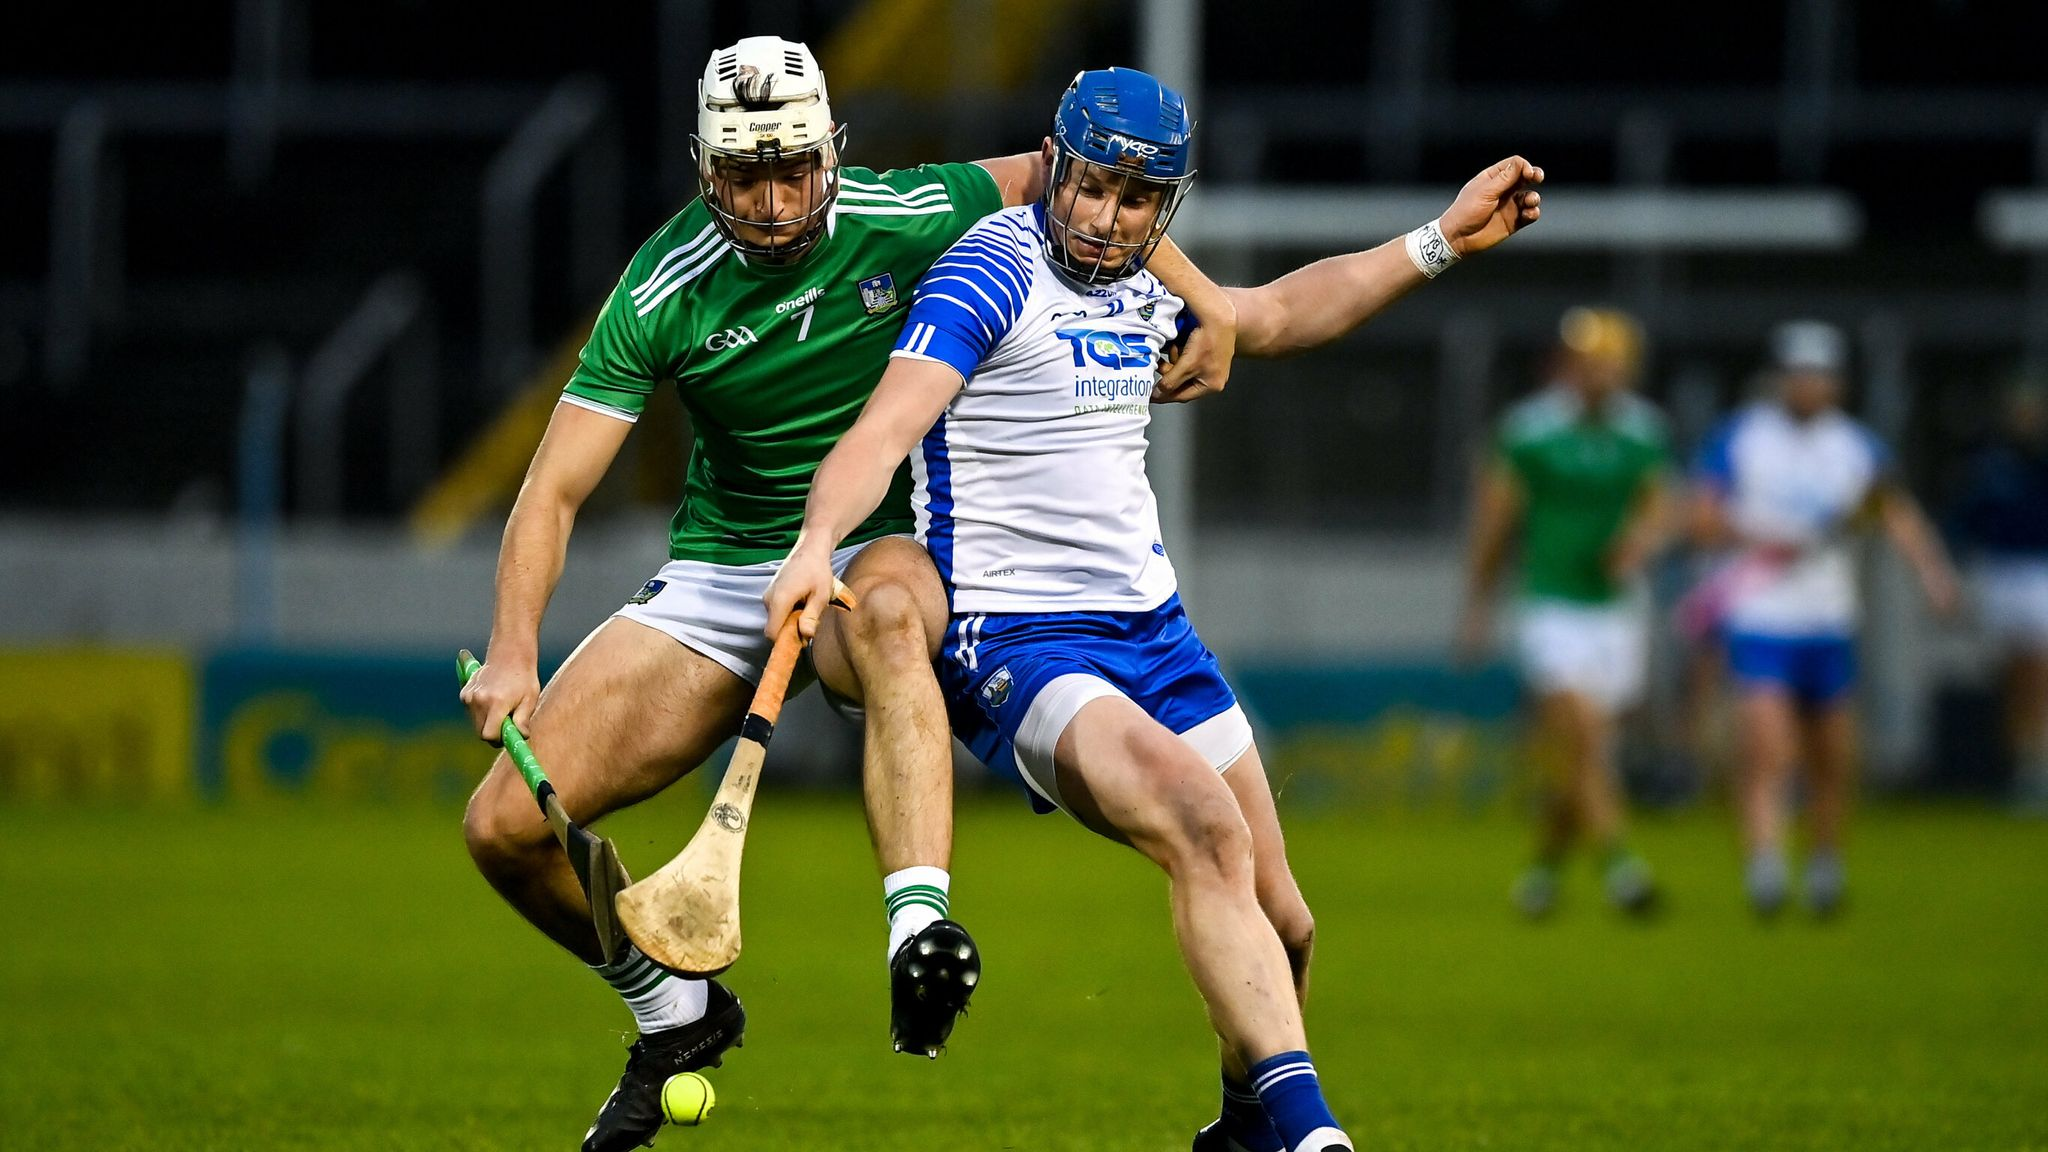 All ireland hurling final 2021 betting online best online sports betting service